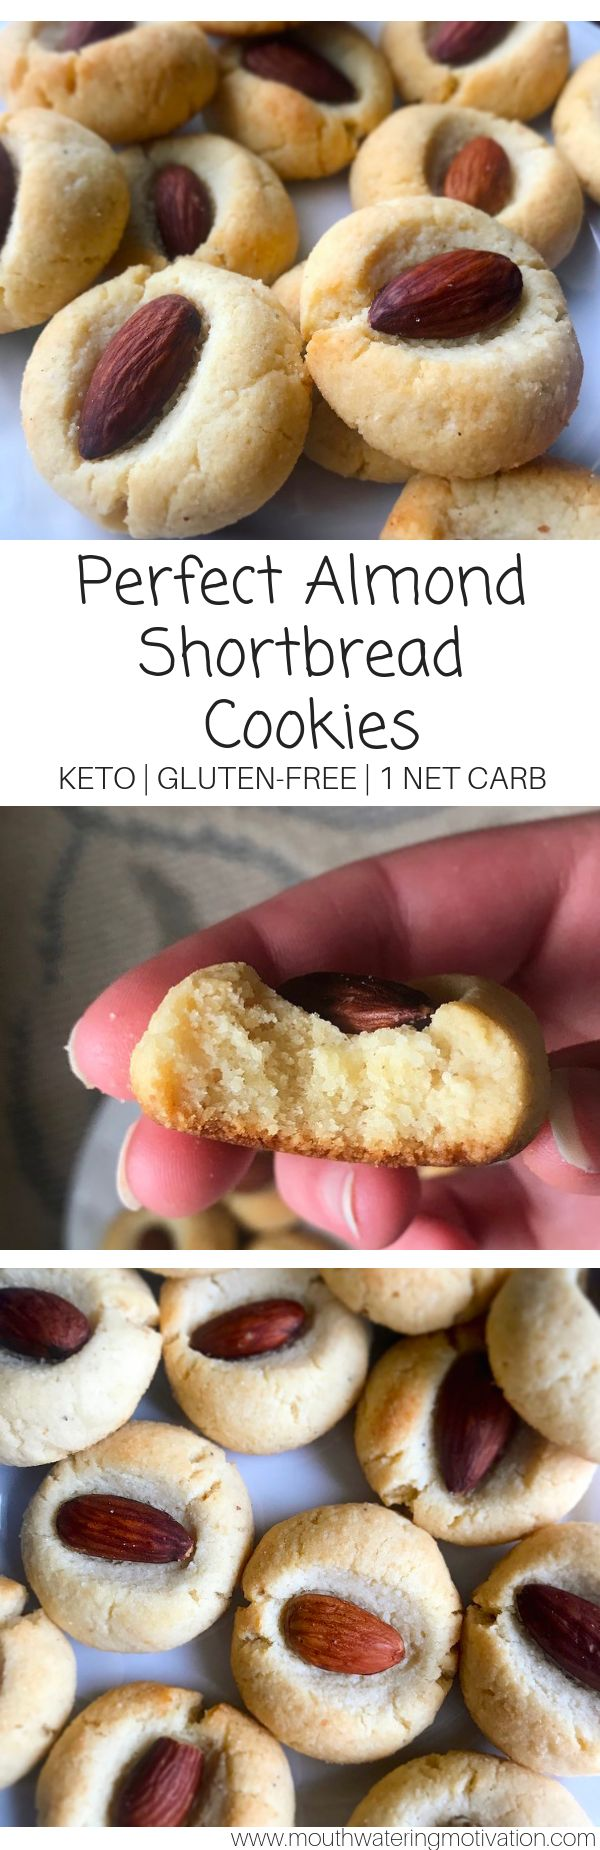 Perfect Almond Shortbread Cookies-KETO – Mouthwatering Motivation